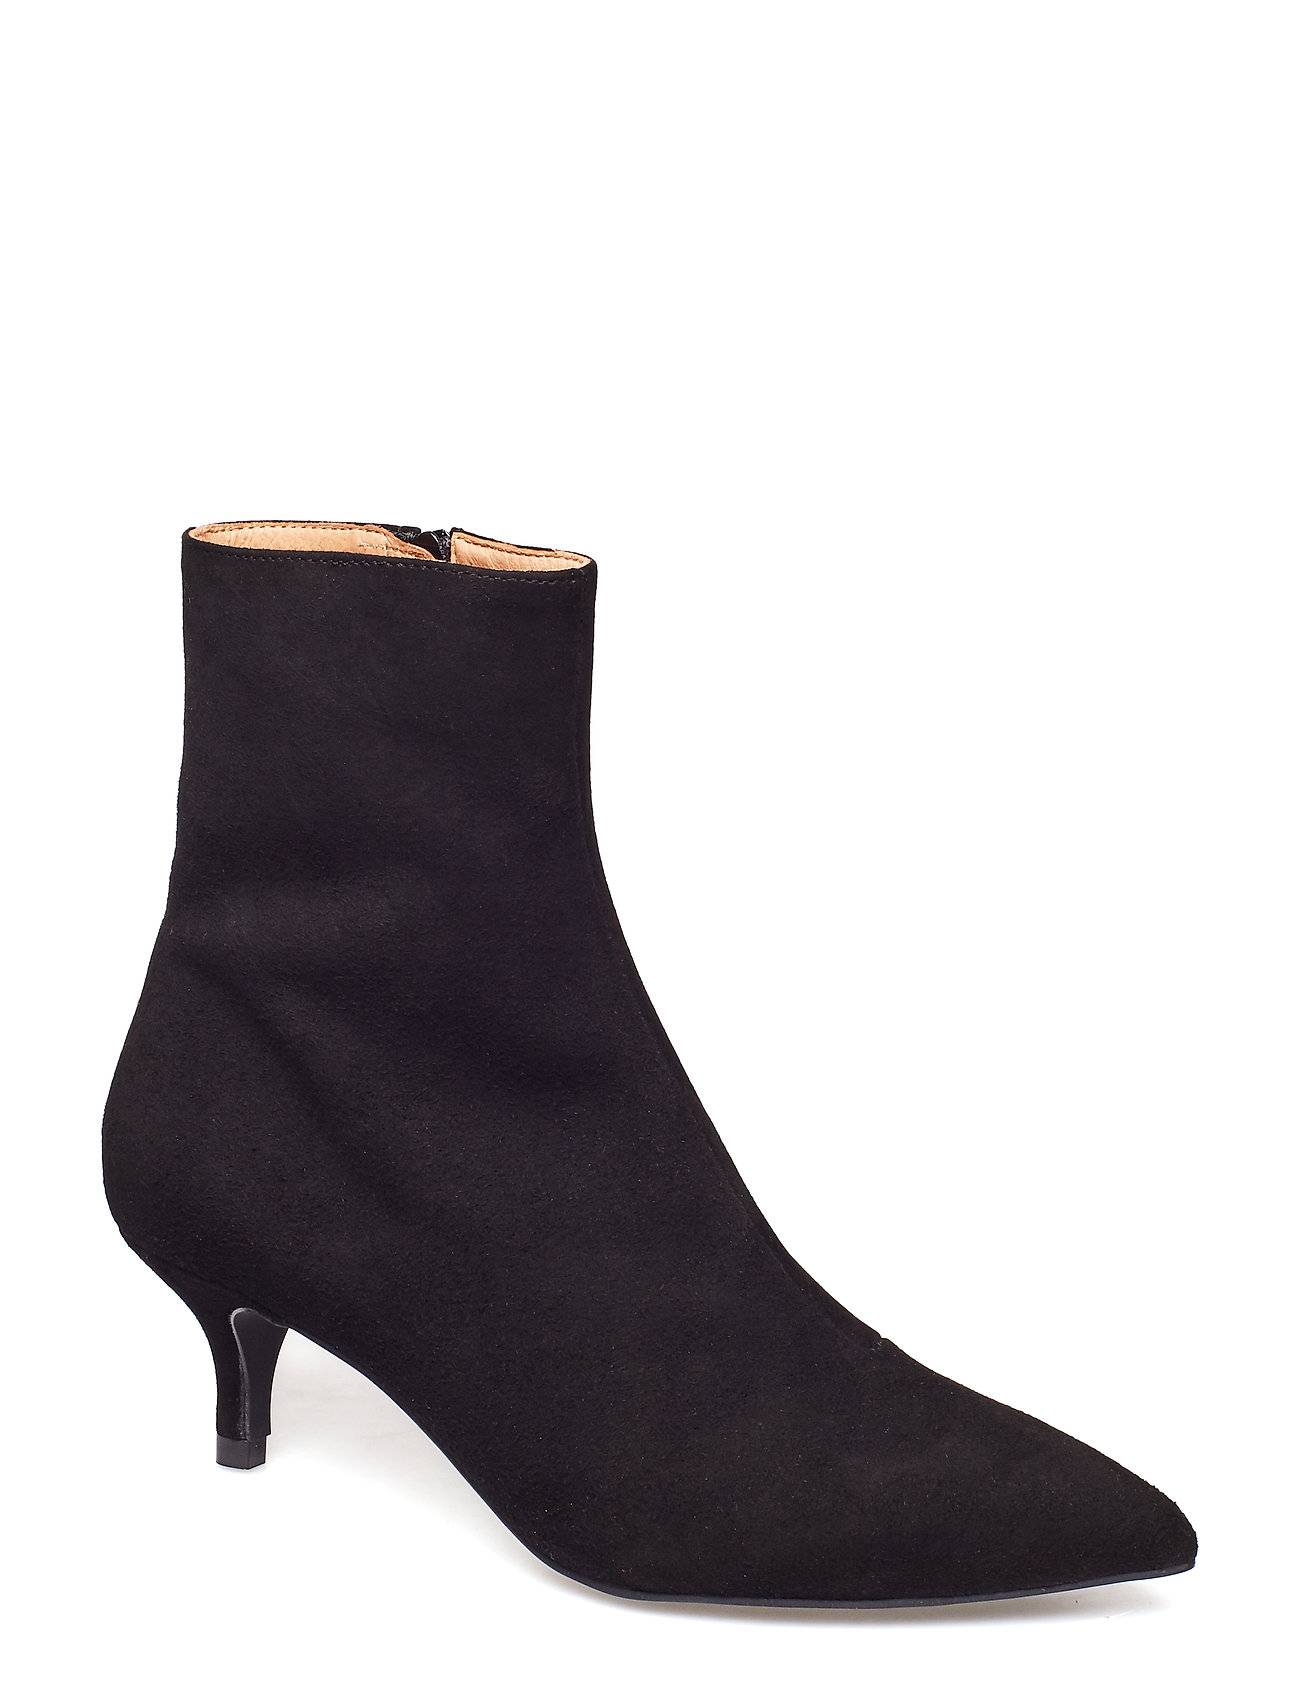 Henry Kole Grace Shoes Boots Ankle Boots Ankle Boots With Heel Musta Henry Kole